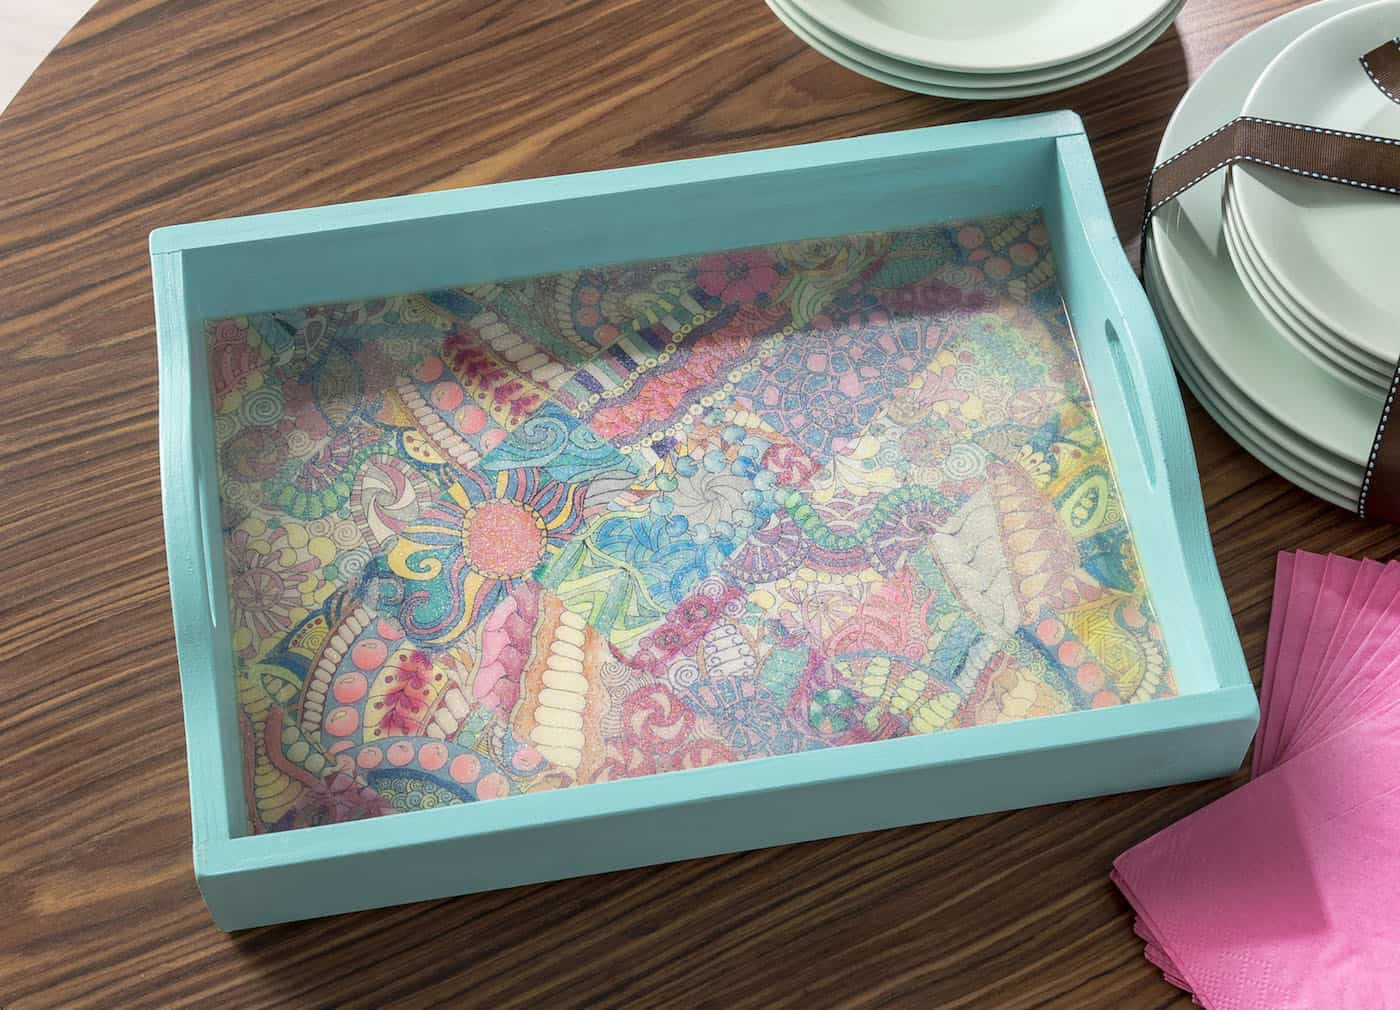 Do you have a bunch of adult coloring pages laying around and aren't sure what to do with them? Decorate a tray! It's easy and makes a great gift idea.